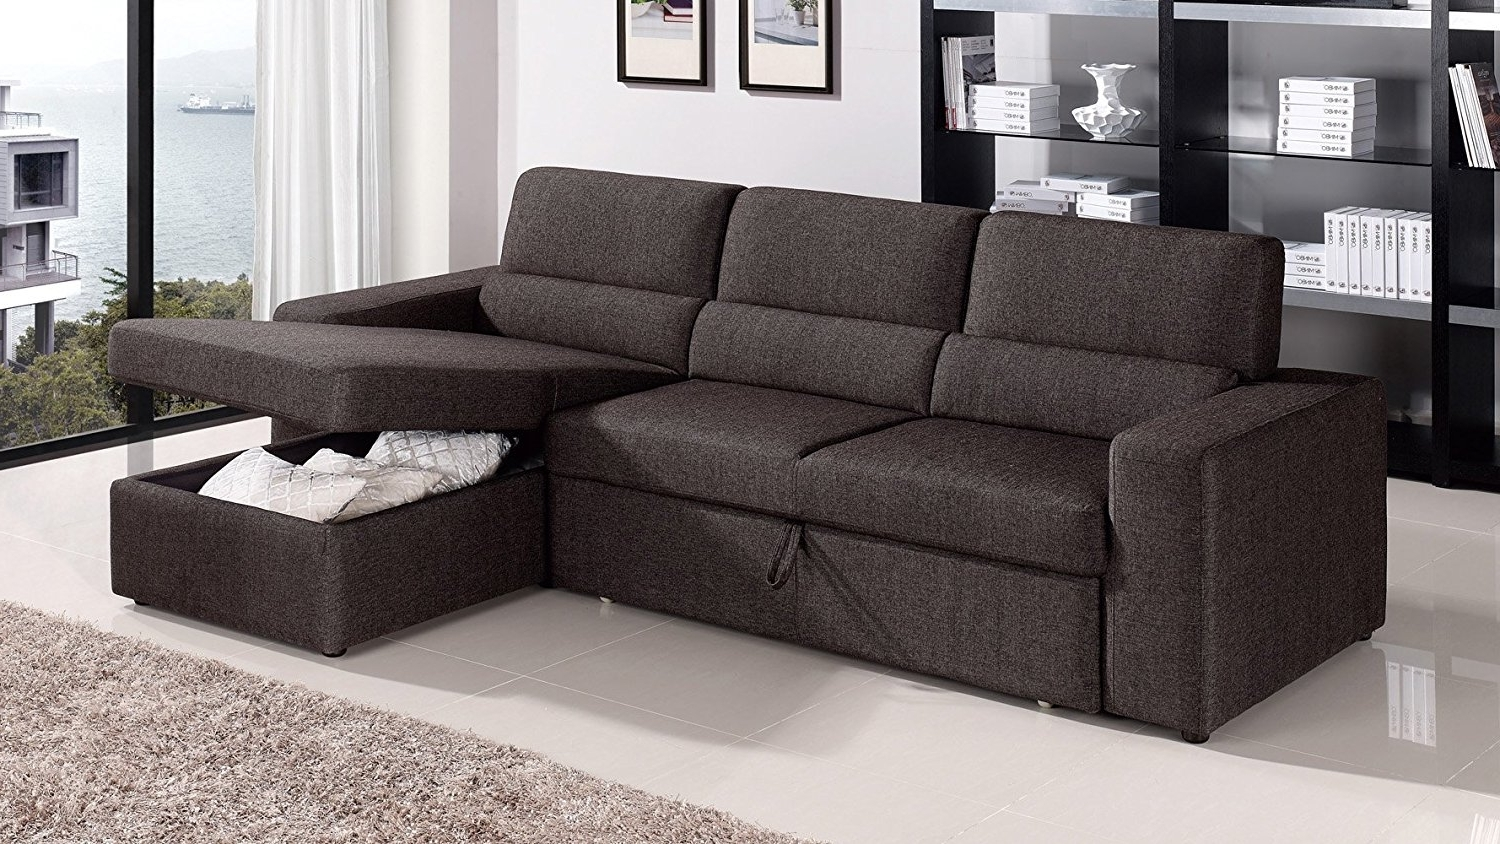 Most Recently Released Sleeper Sectional Sofas Regarding Amazon: Black/brown Clubber Sleeper Sectional Sofa – Right (View 6 of 15)